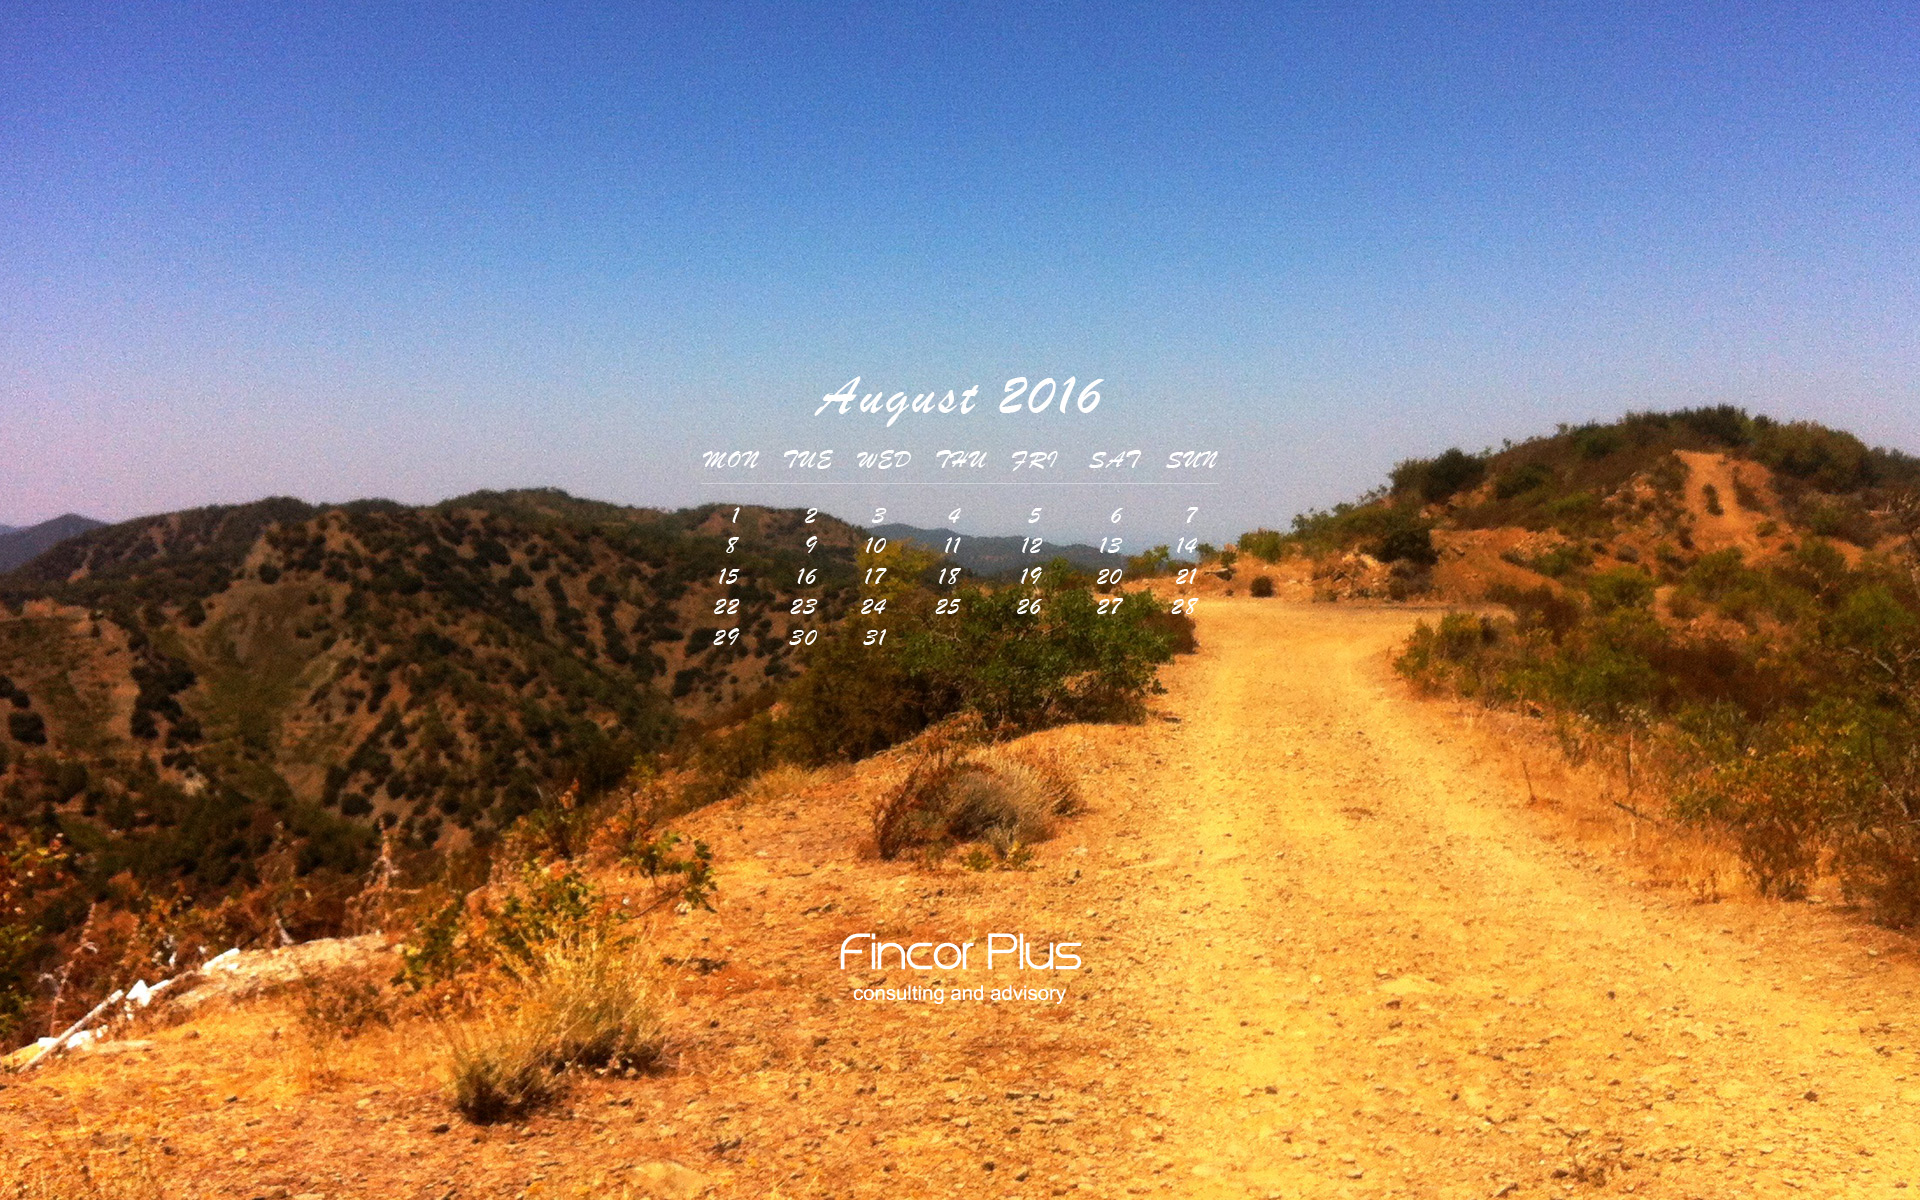 FincorPlus wallpaper August 2016